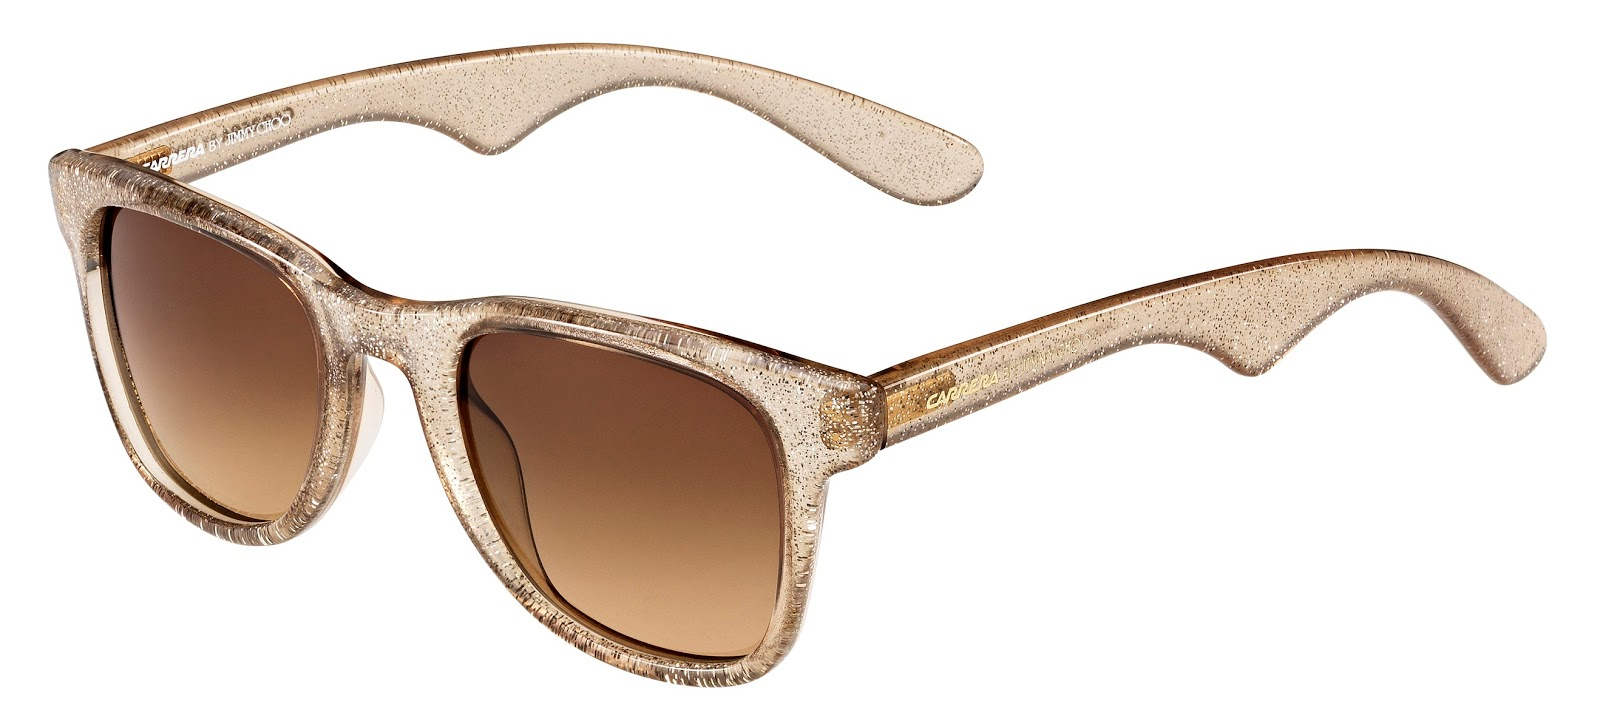 9003709443e2 To check out    shop the collection at Jimmy Choo click here   at Solstice  here. What do you think of the Carrera   Jimmy Choo collaboration